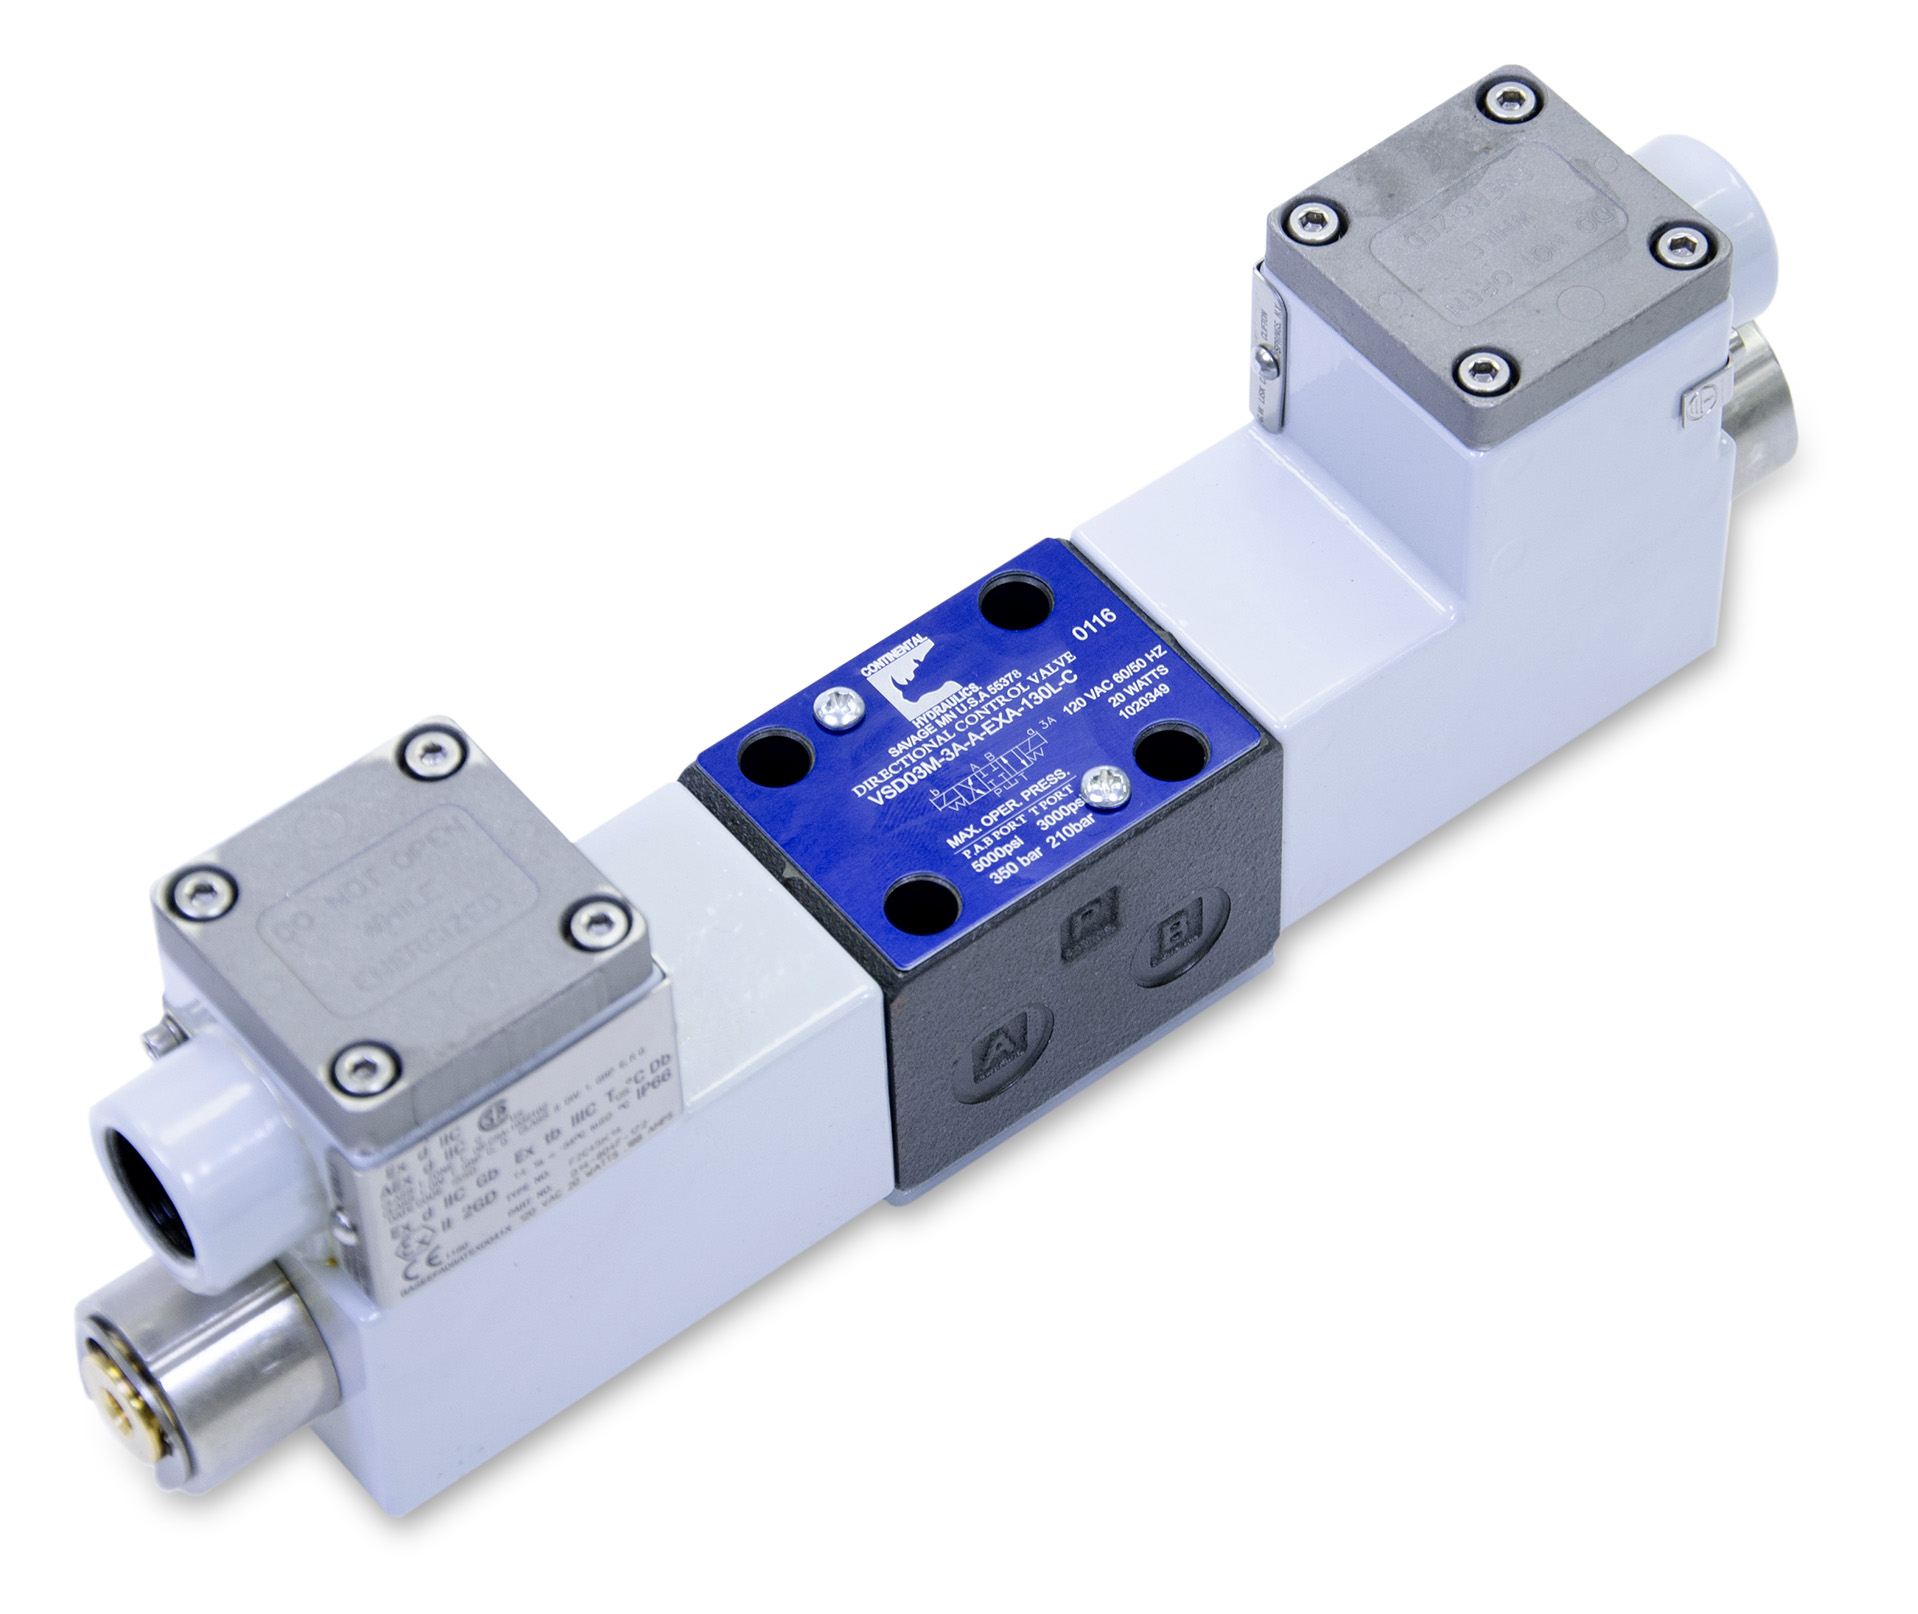 VSD03M-3A directional control valve product; white background